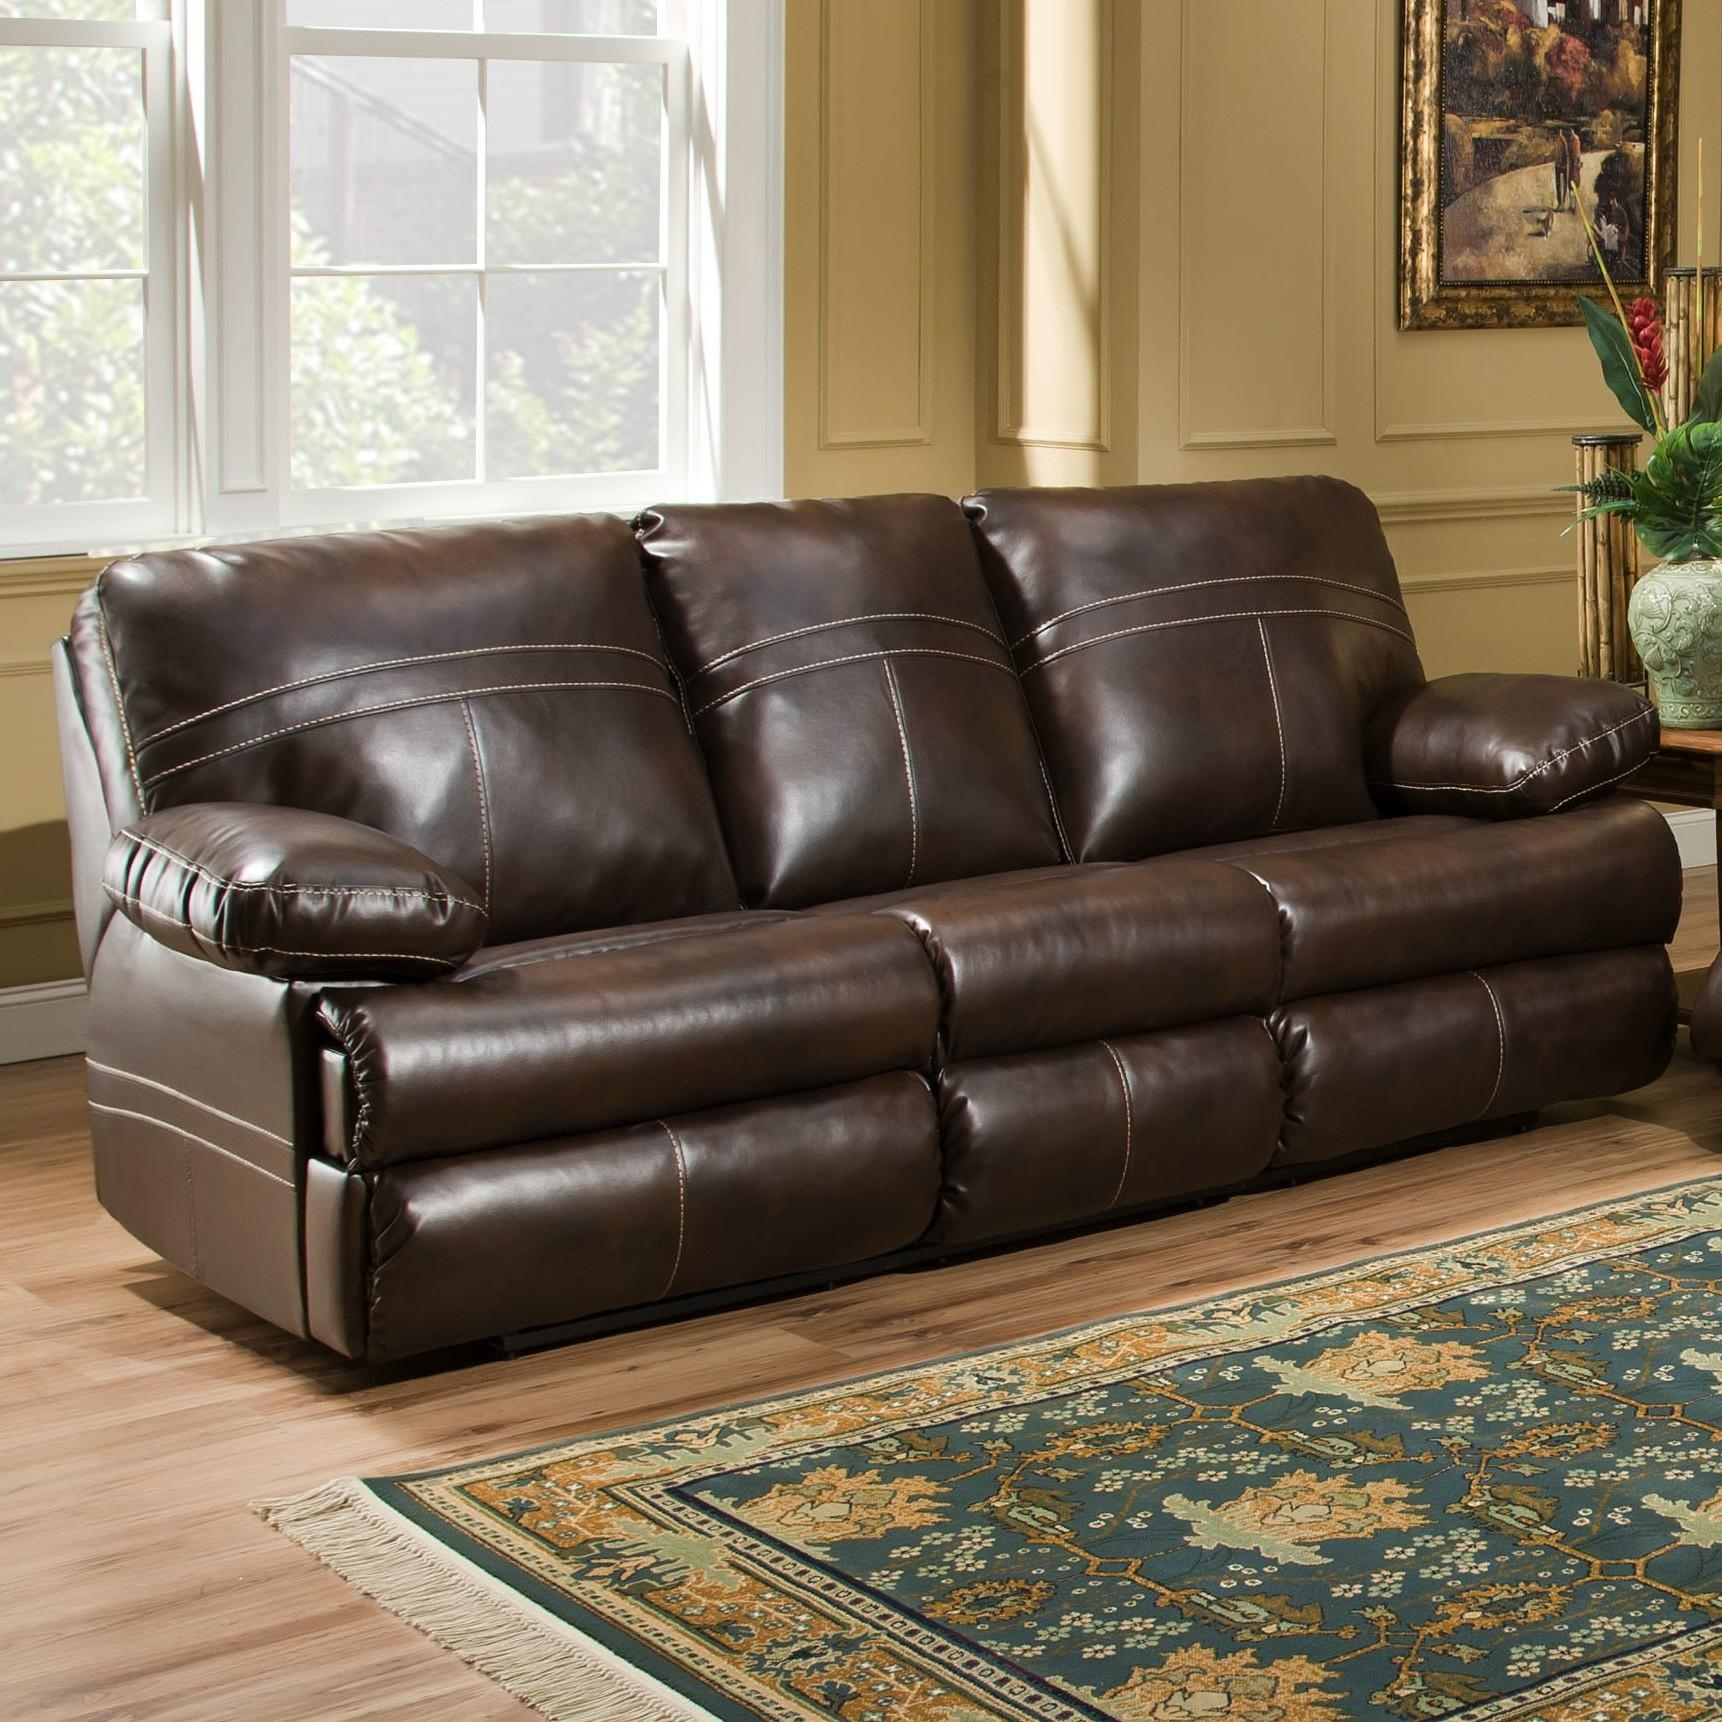 20 Best Collection Of Simmons Leather Sofas Sofa Ideas